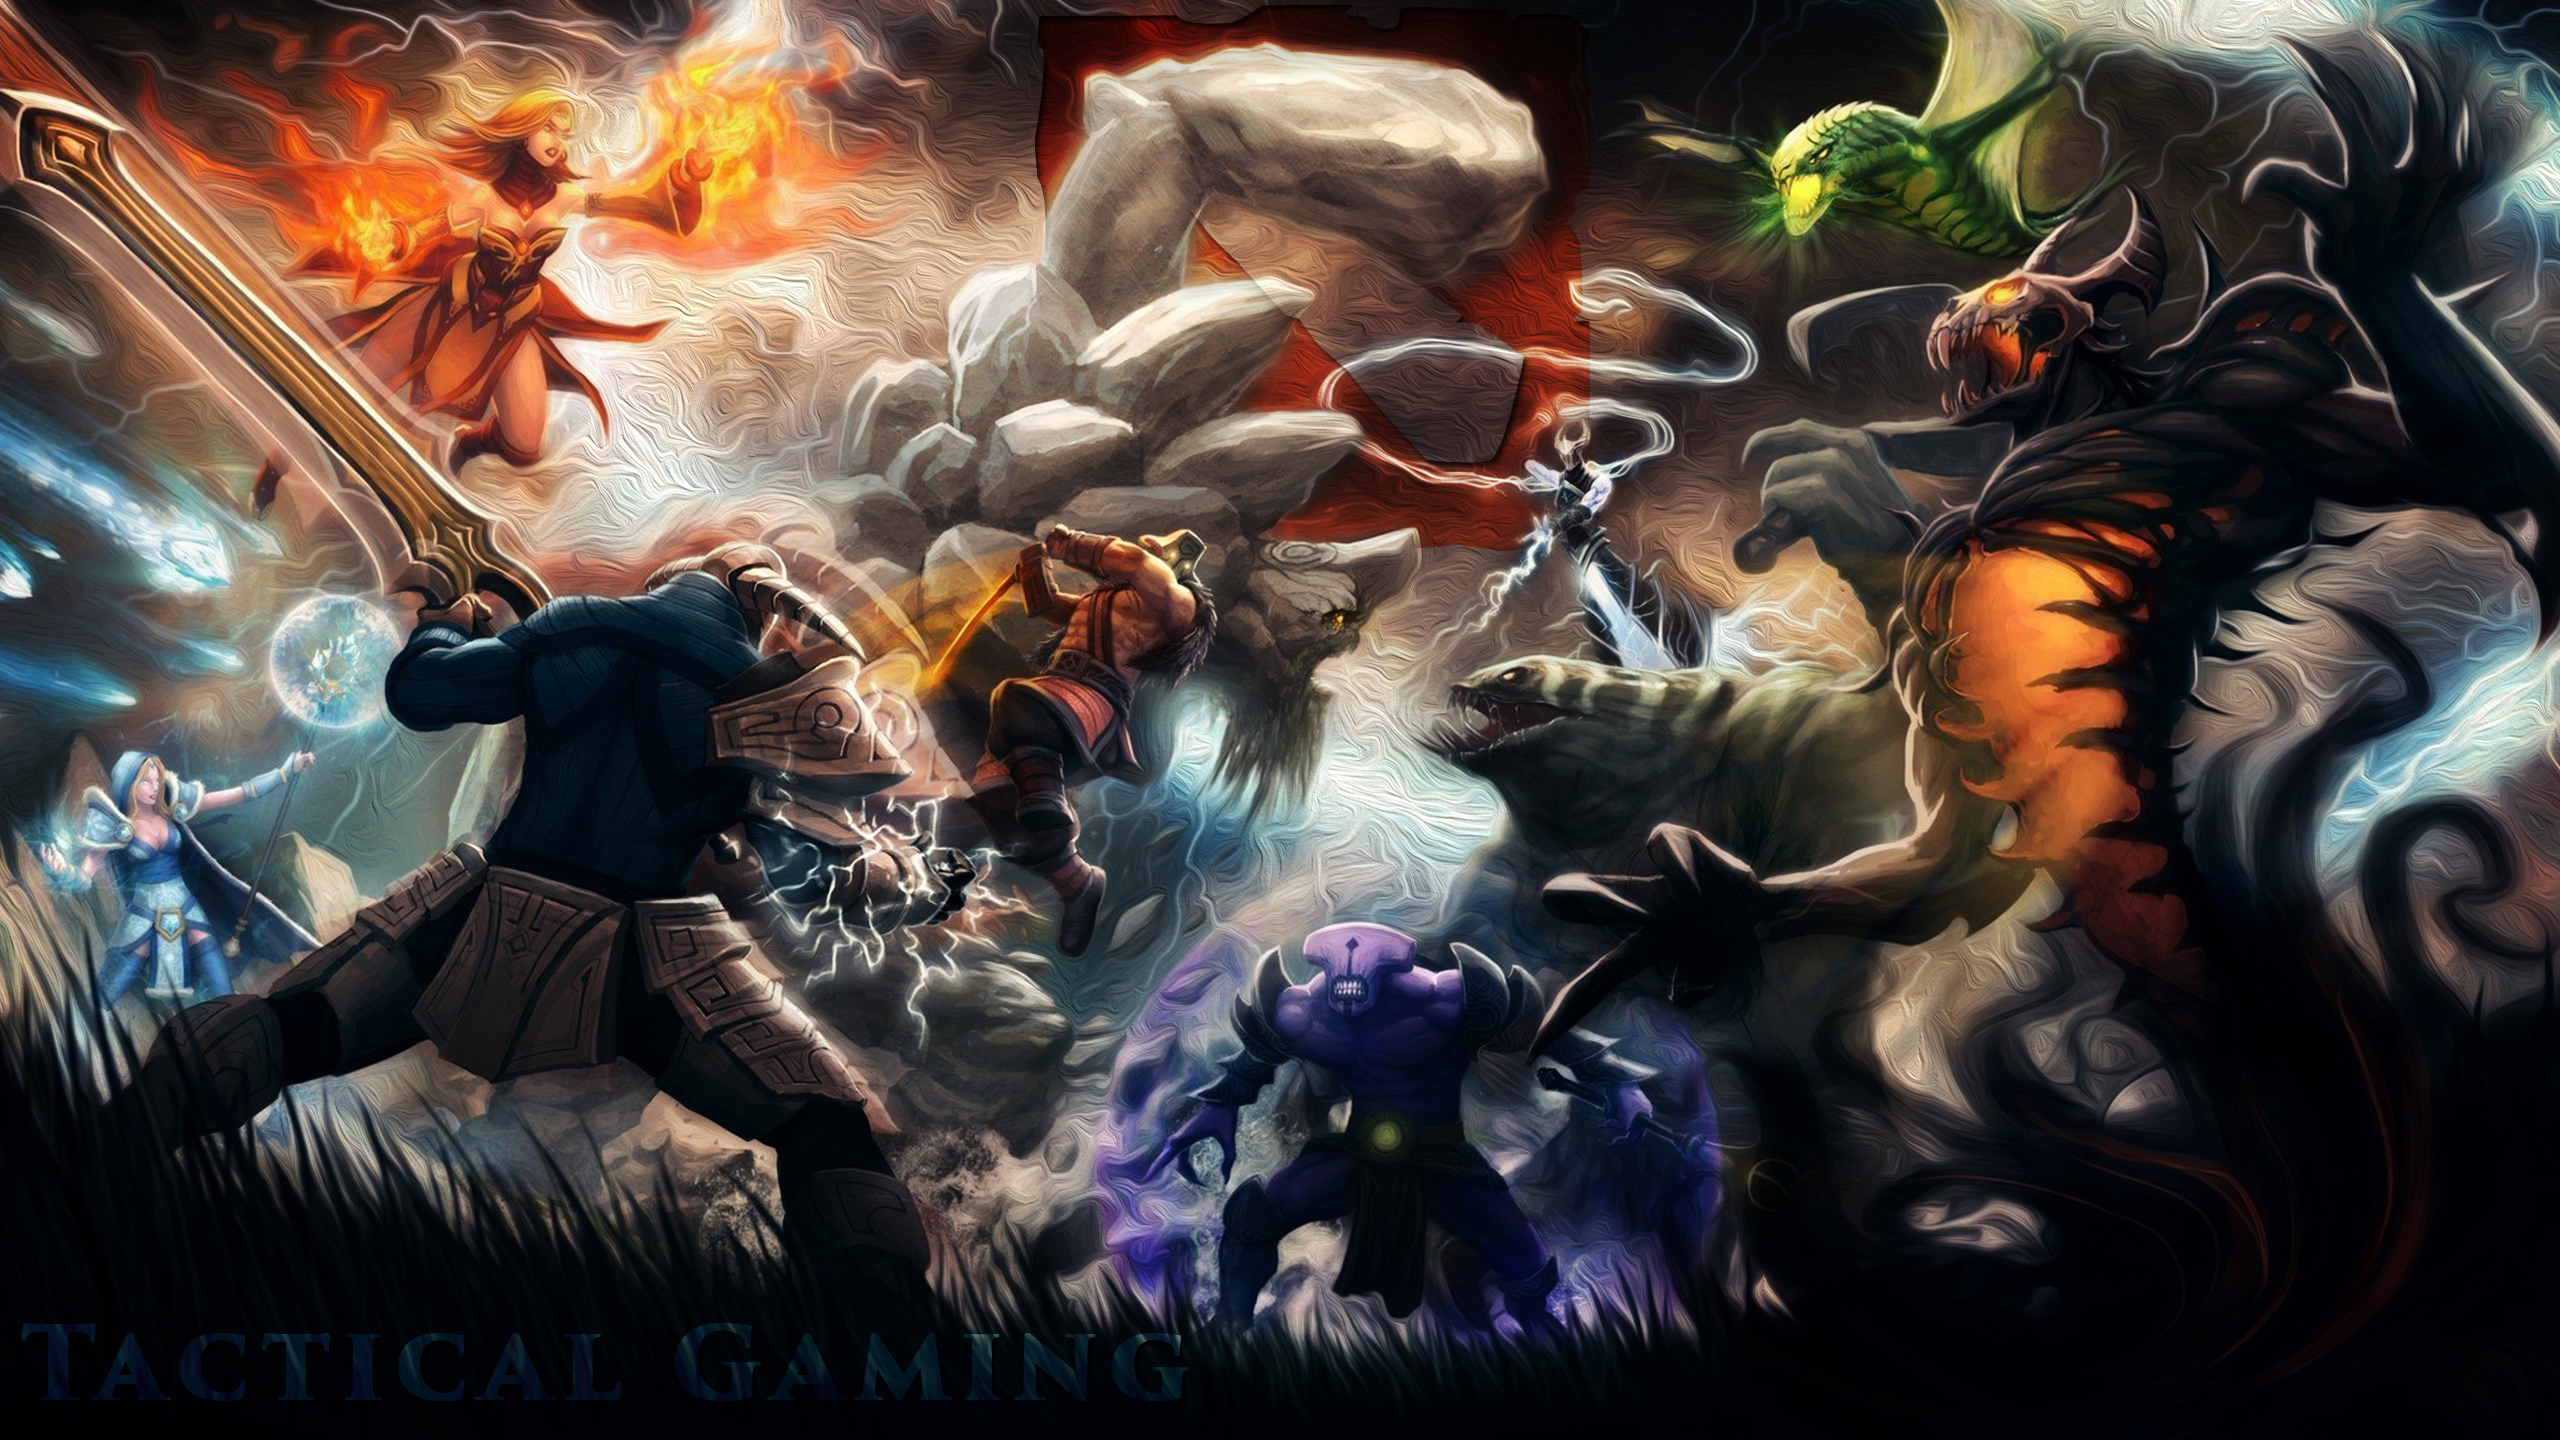 Dota2 Wallpaper   PC Wallpapers   Gallery   Tactical Gaming 2560x1440